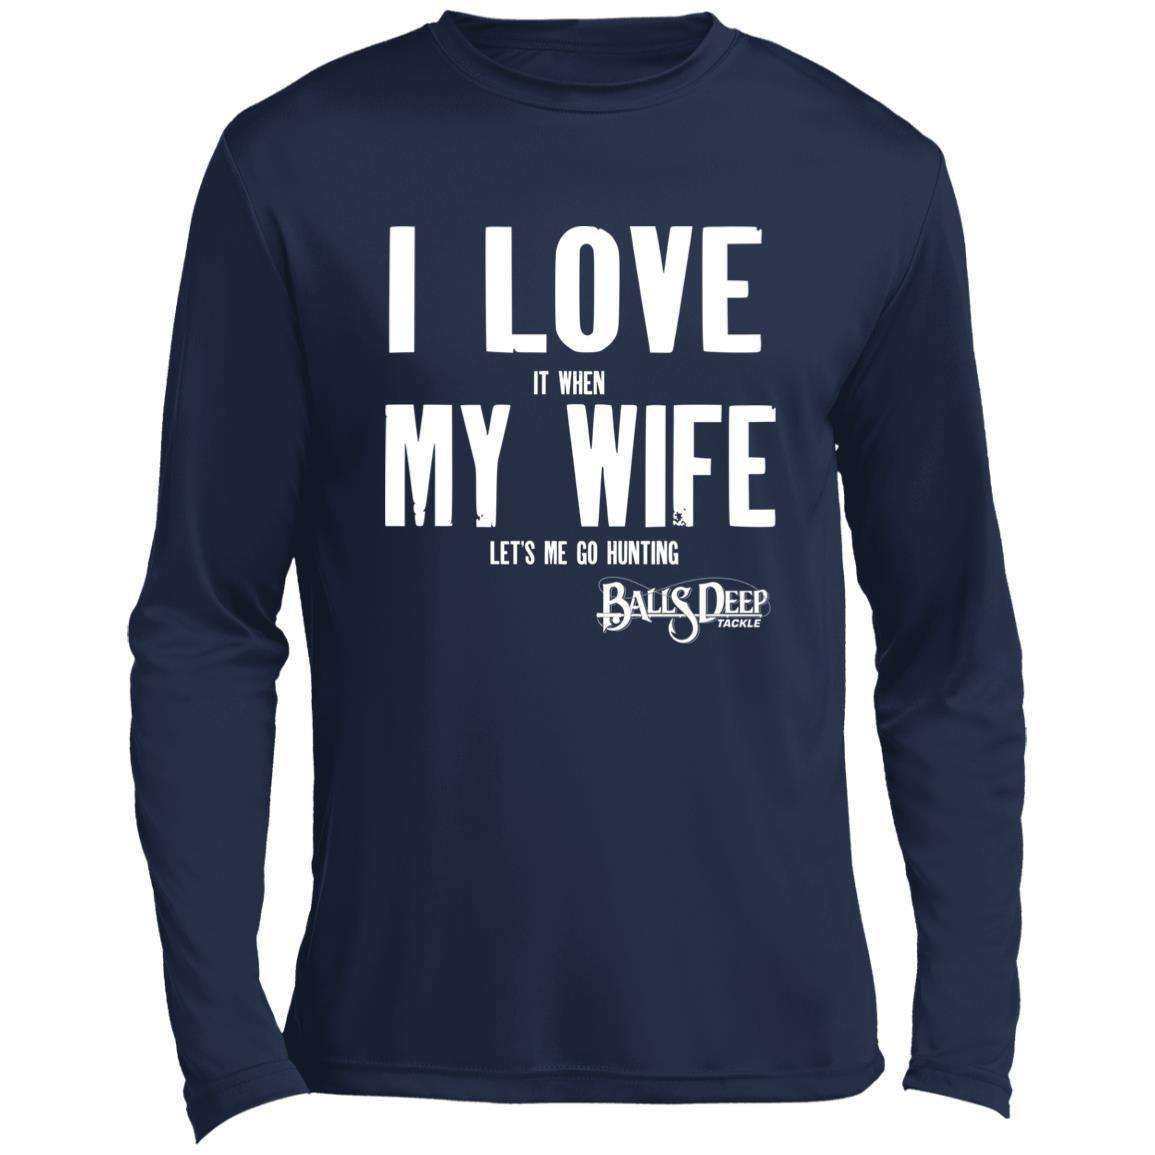 I Love My Wife (Hunting) Performance Long Sleeve